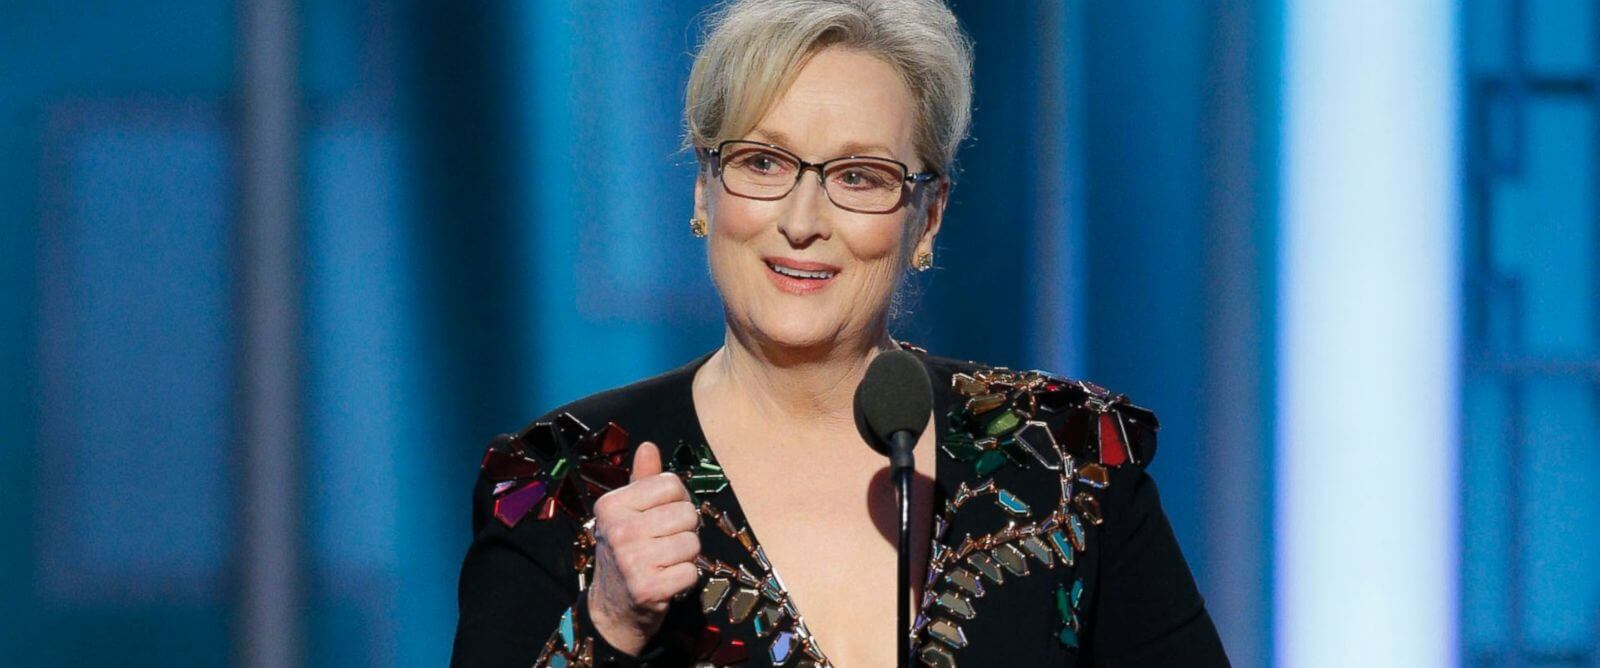 Meryl Streep is a Blubbering Moron